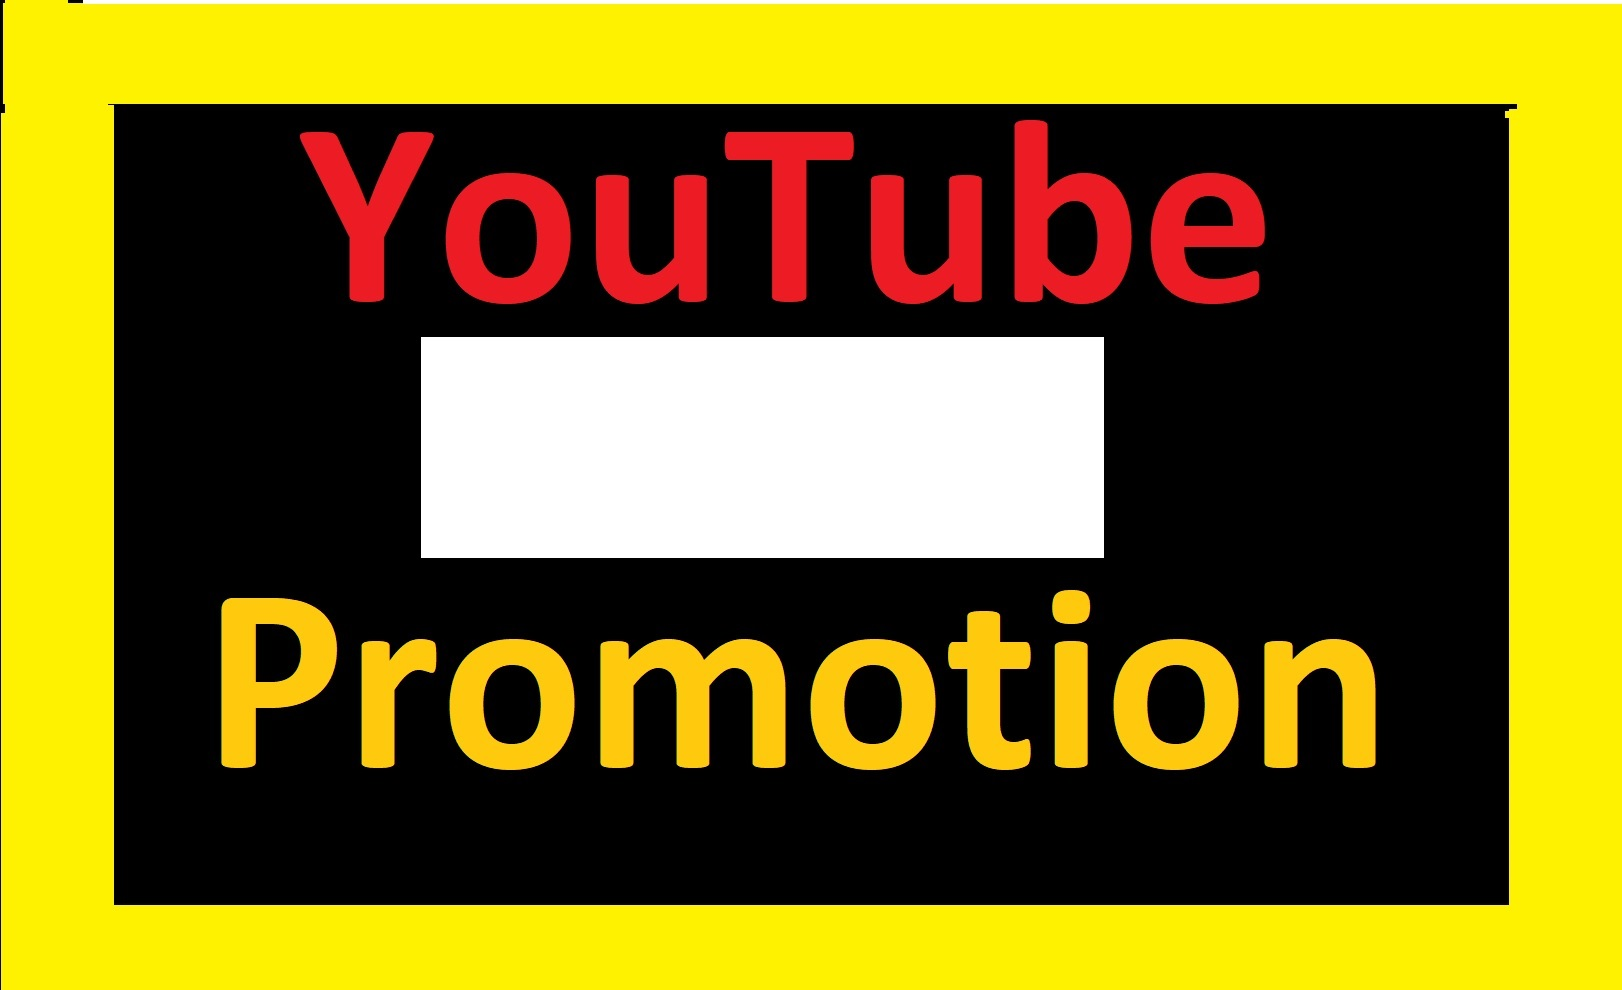 Good retention promotion and social marketing very fast